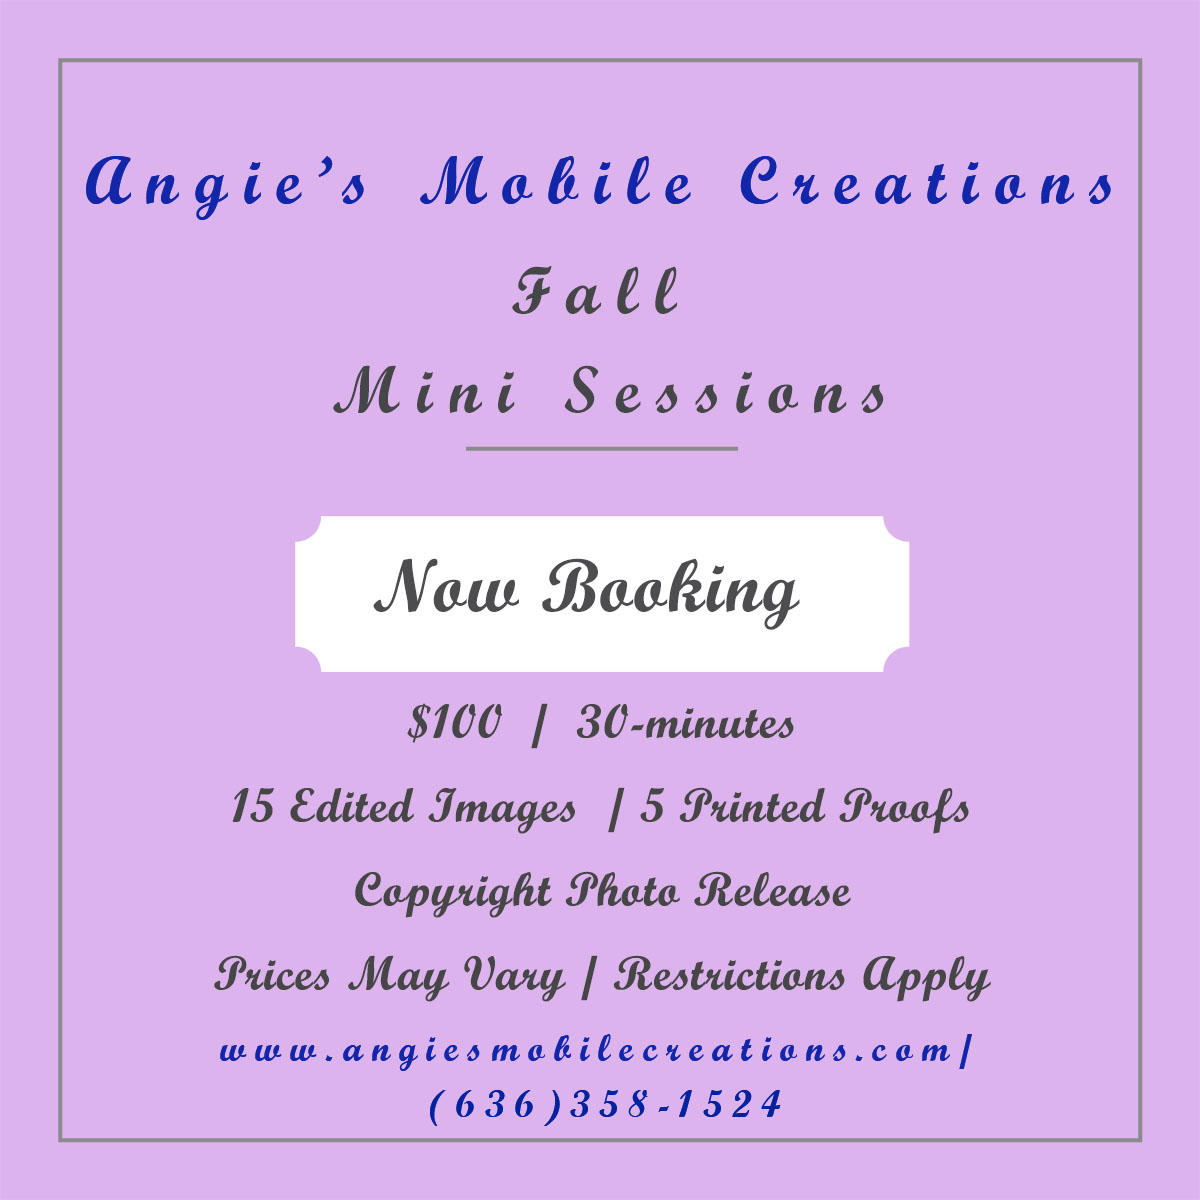 Angie's Mobile Creations image 16